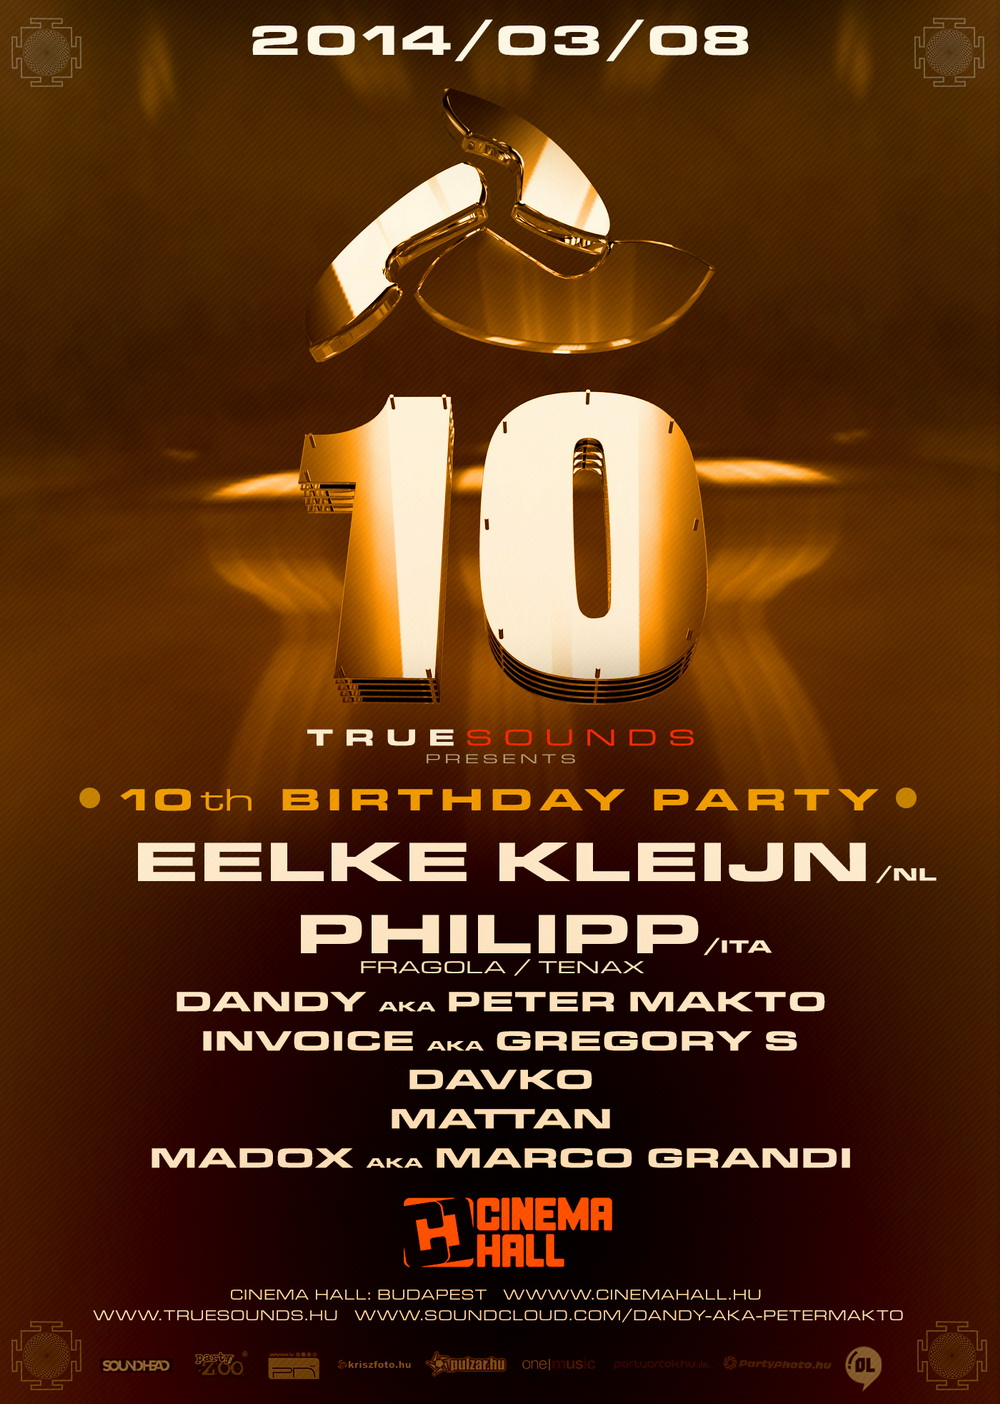 Truesounds presents: 10th Birthday Party